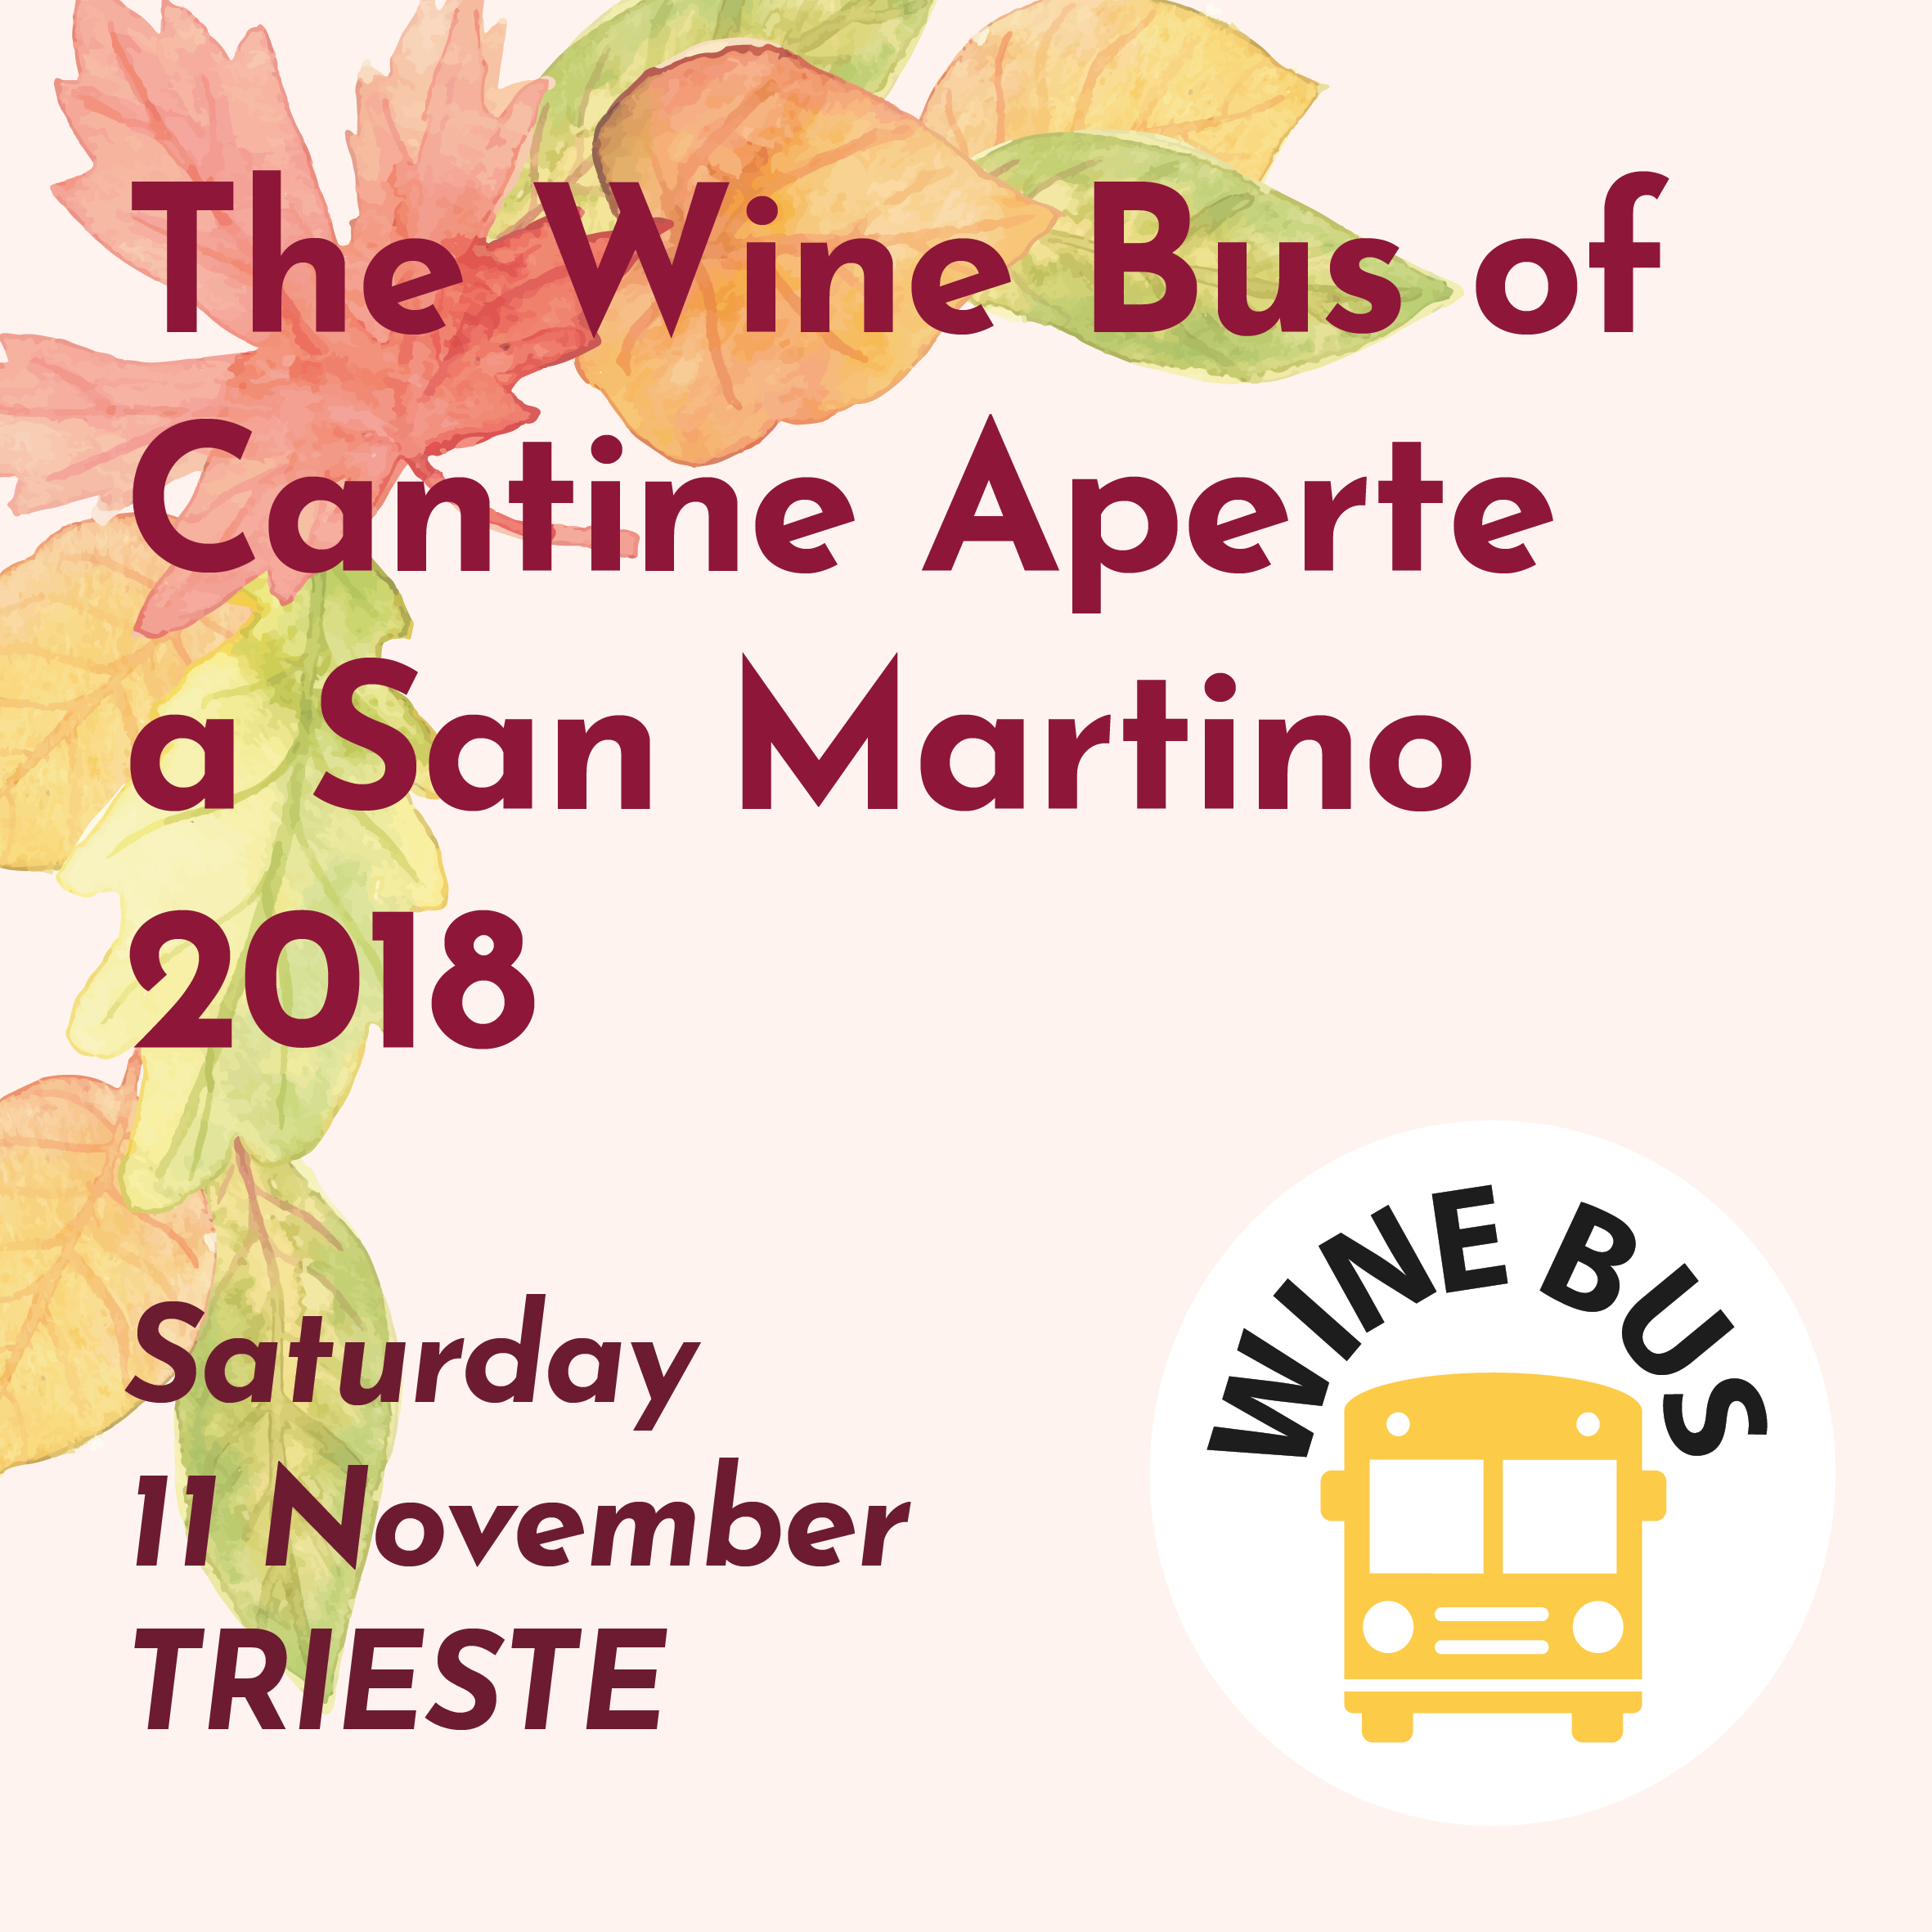 The Wine Bus of Cantine Aperte a San Martino 2018